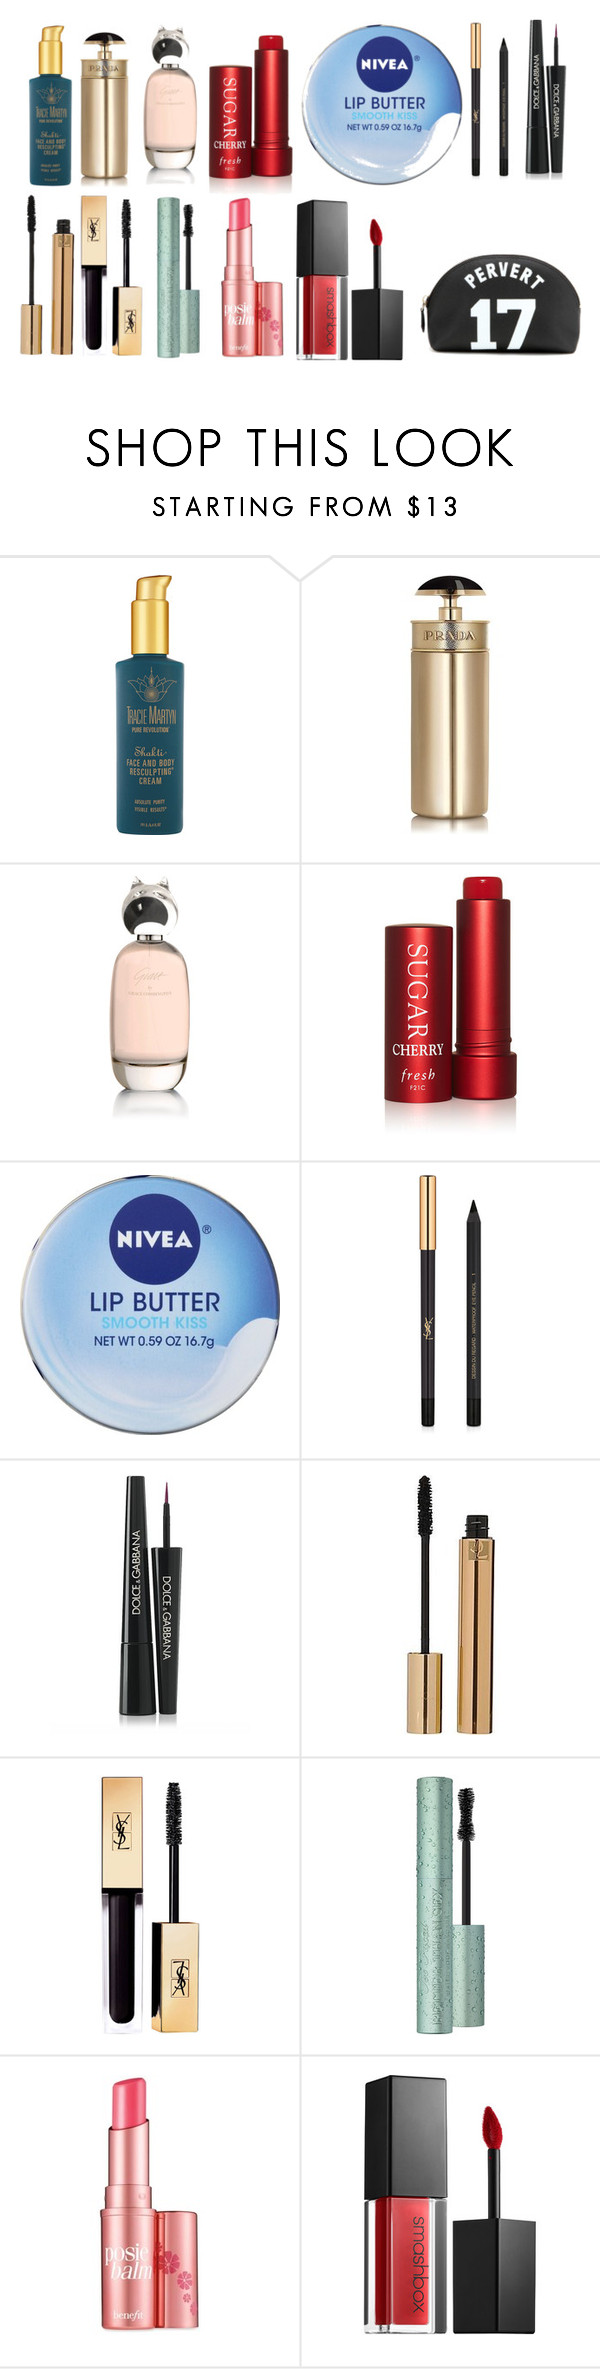 """""""#6"""" by mentarijae on Polyvore featuring Tracie Martyn, Prada, Comme des Garçons, Fresh, Nivea, Yves Saint Laurent, Dolce&Gabbana, Benefit, Smashbox and Givenchy"""